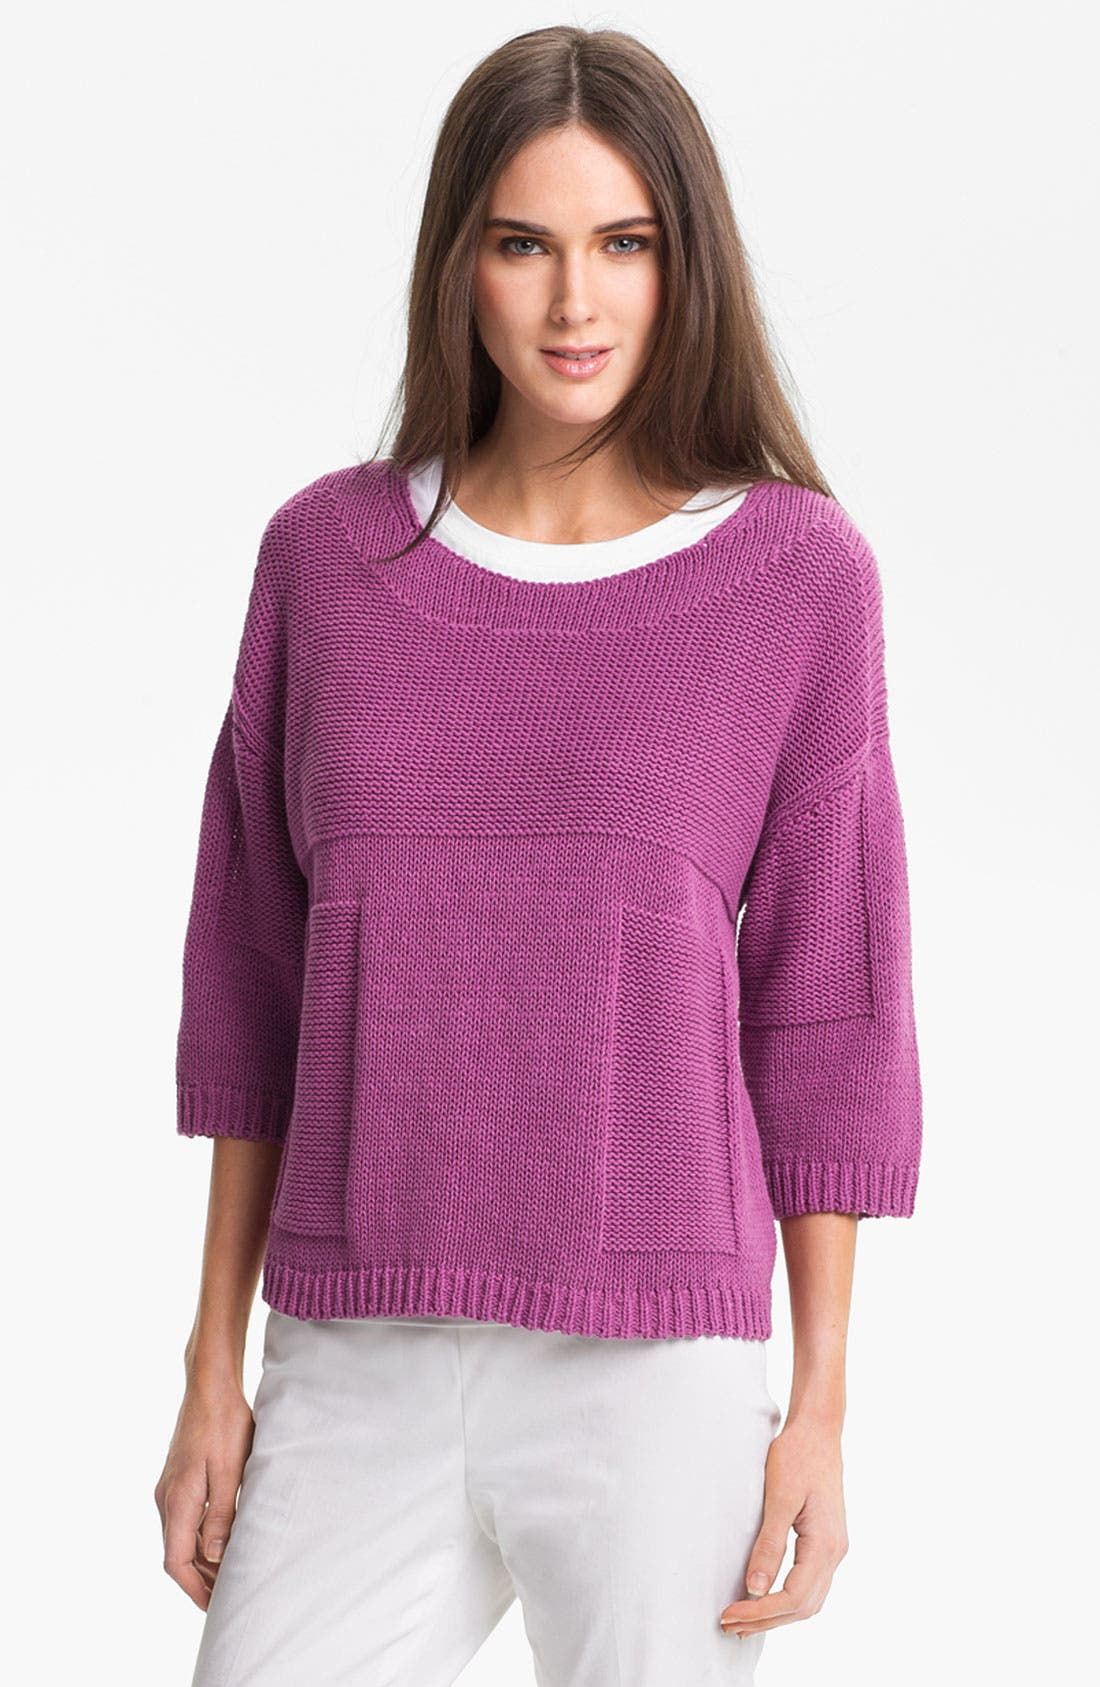 Main Image - Lafayette 148 New York 'Essential' Cotton Blend Sweater